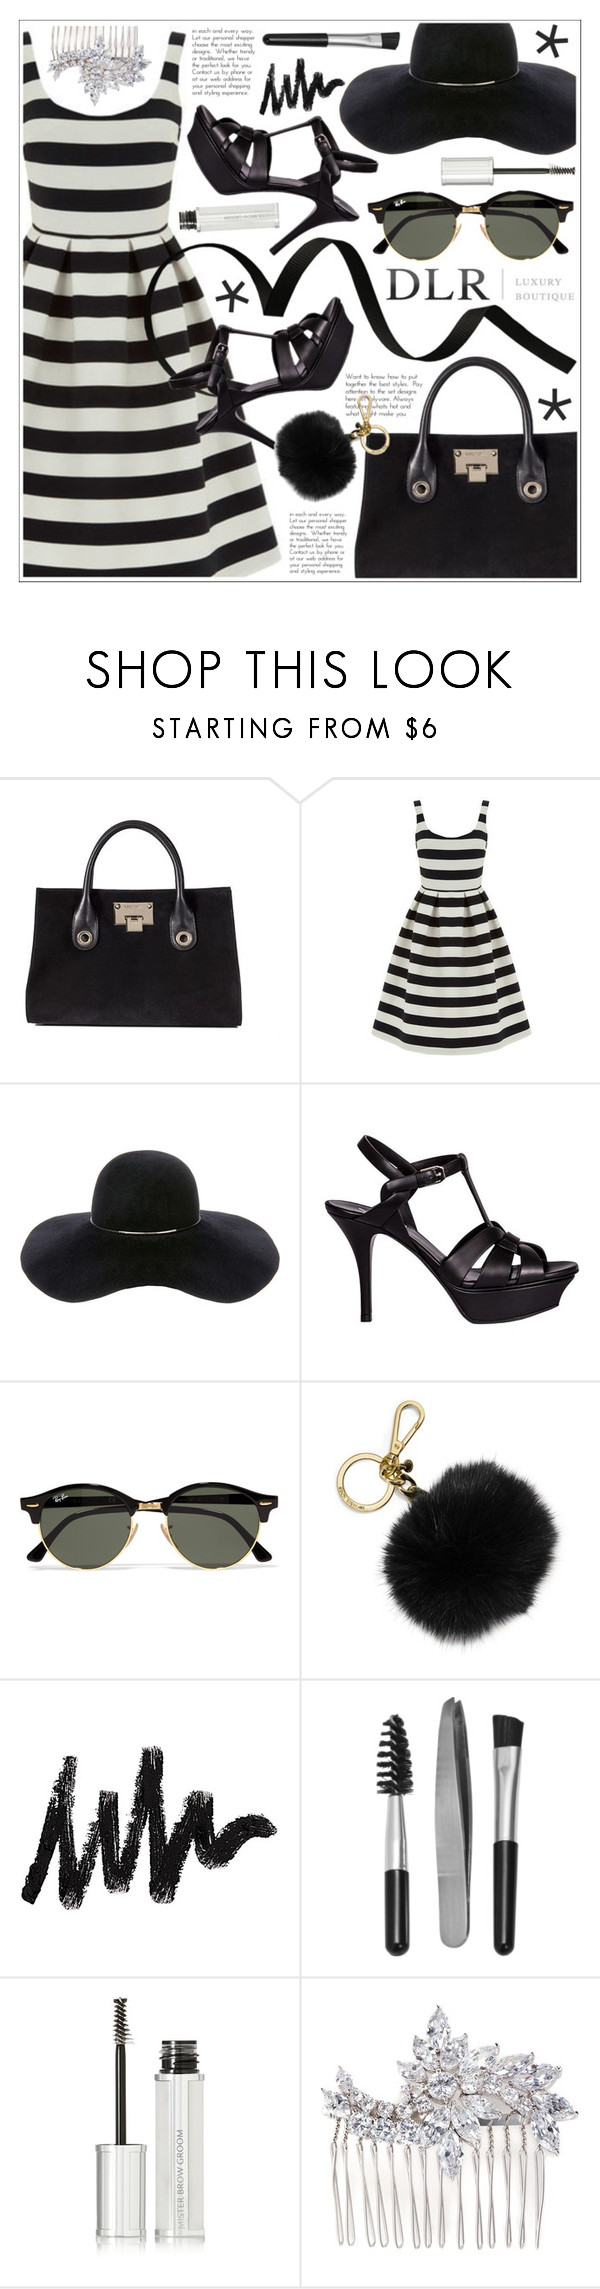 """""""DLRBOUTIQUE.COM"""" by becky12 ❤ liked on Polyvore featuring Jimmy Choo, Warehouse, Eugenia Kim, Yves Saint Laurent, Ray-Ban, MICHAEL Michael Kors, Sephora Collection, Givenchy and CZ by Kenneth Jay Lane"""